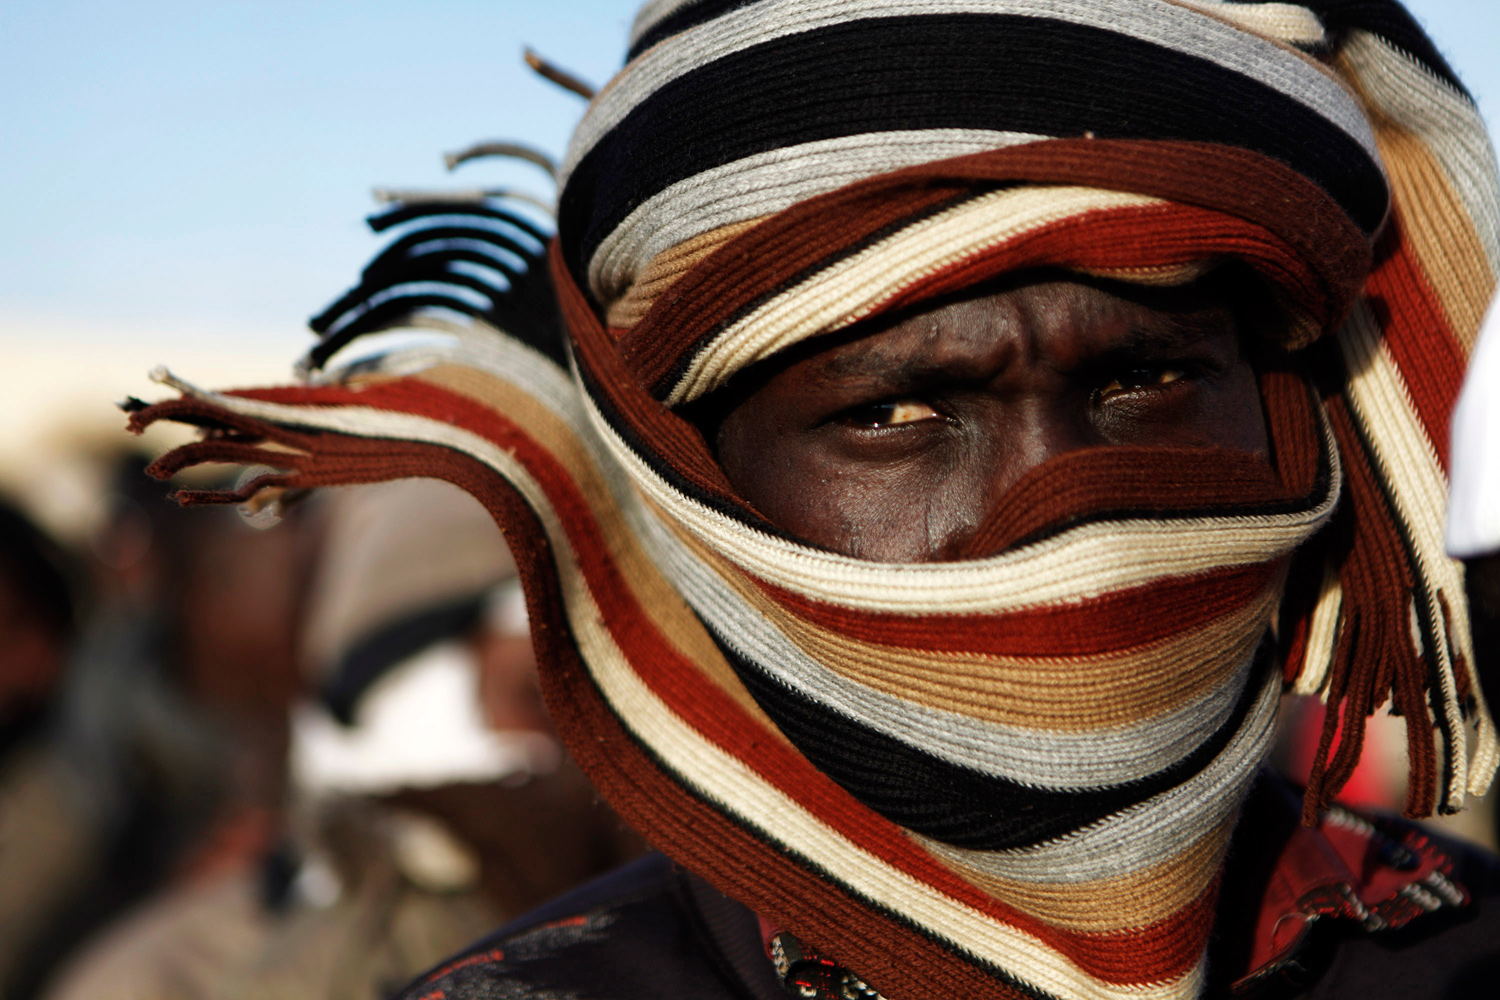 March 16, 2011. A Chadian refugee waits in line for food distribution at the Libya-Egypt border after fleeing fighting in eastern Libya.